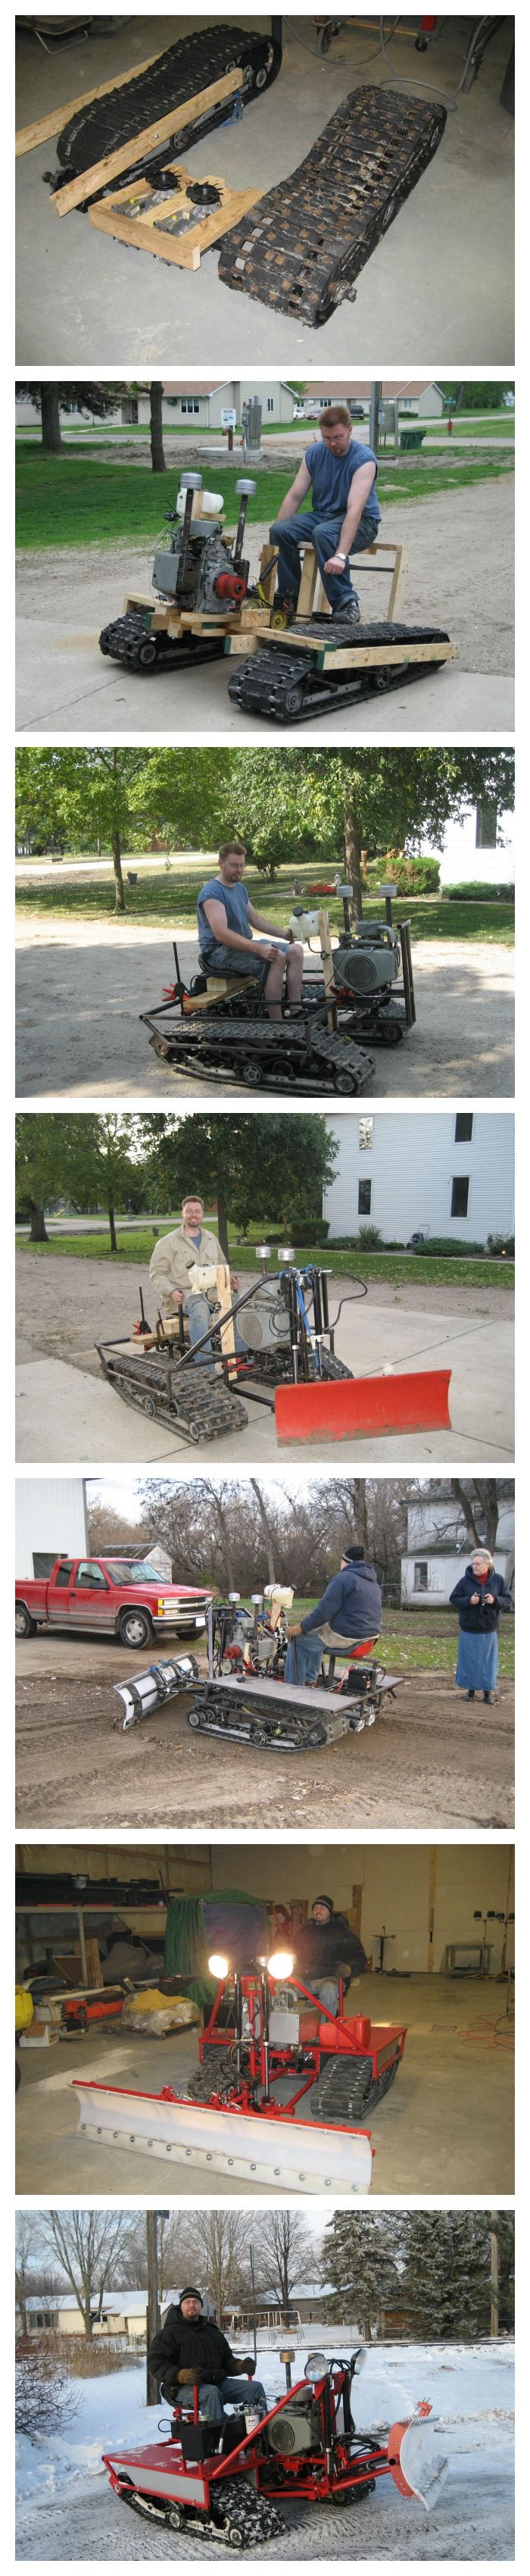 Millers Auto S 1000 Ideas About Miller Welding On Pinterest Welding Projects